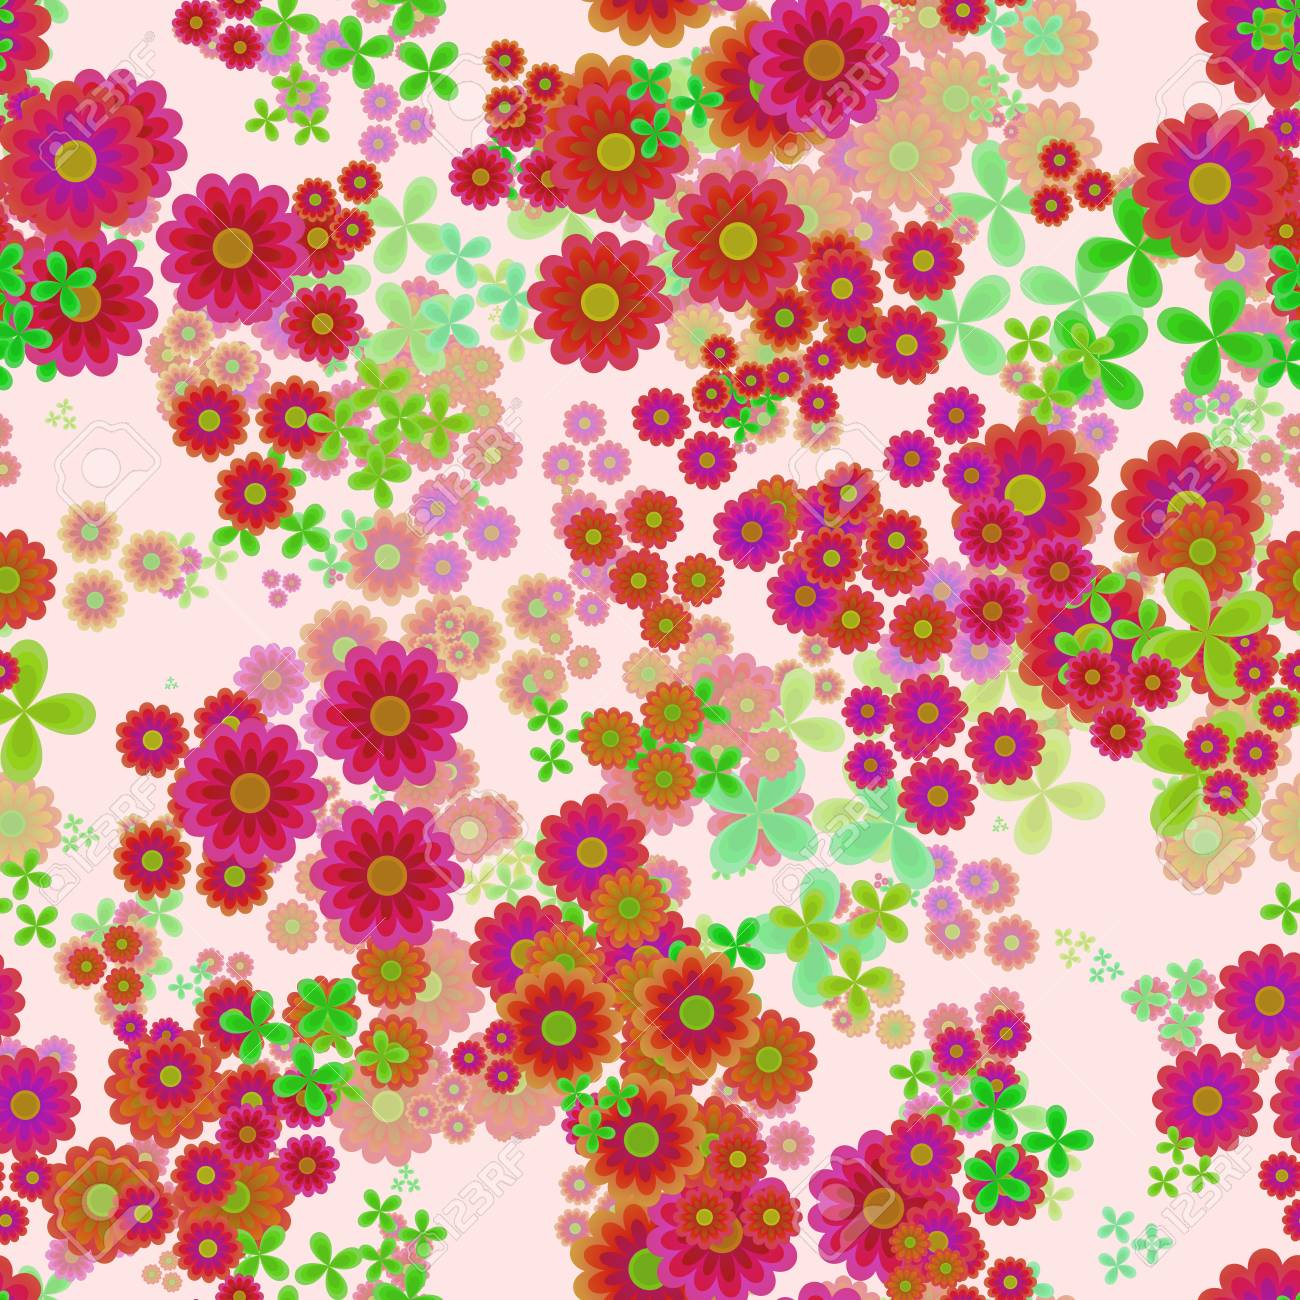 Abstract Flowers Red Orange Pink And Green Floral Pattern Stock Photo Picture And Royalty Free Image Image 74413952